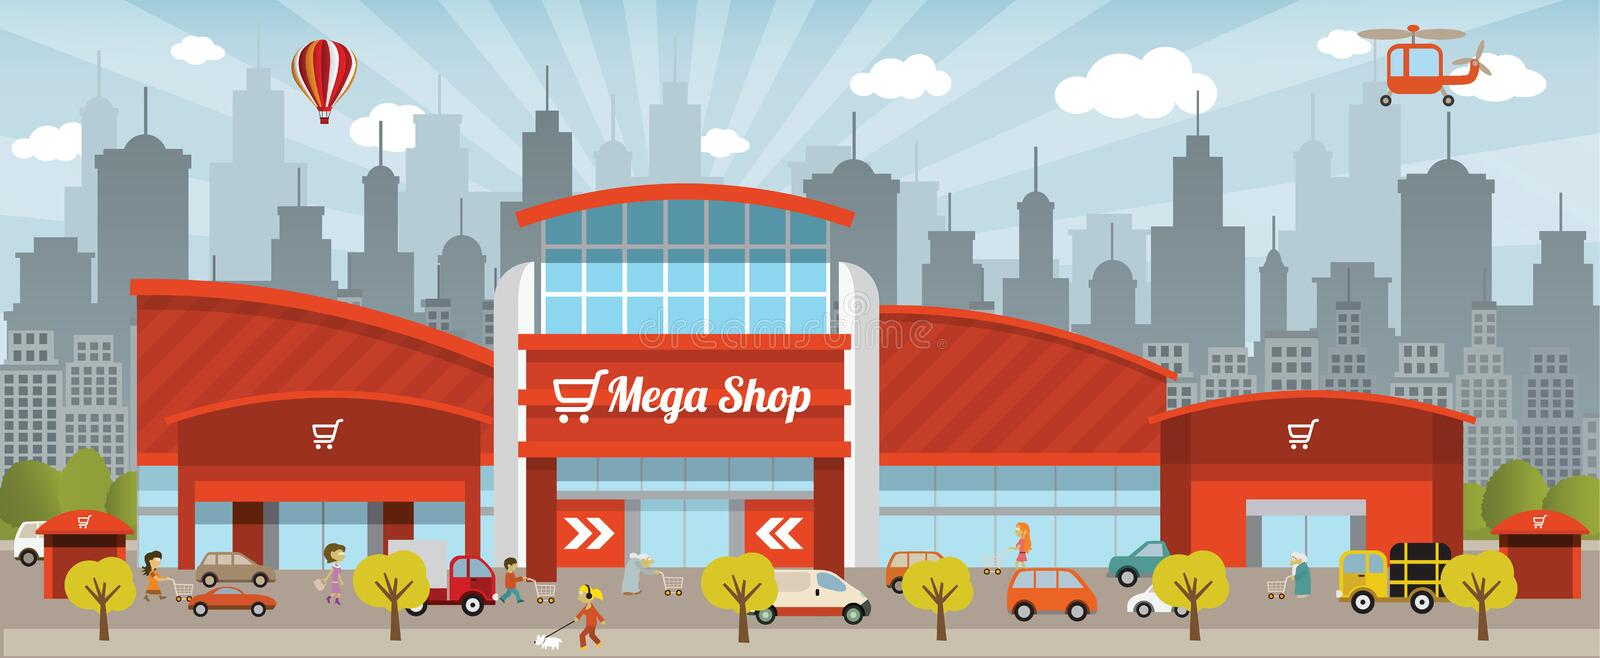 Shopping in the city vector illustration